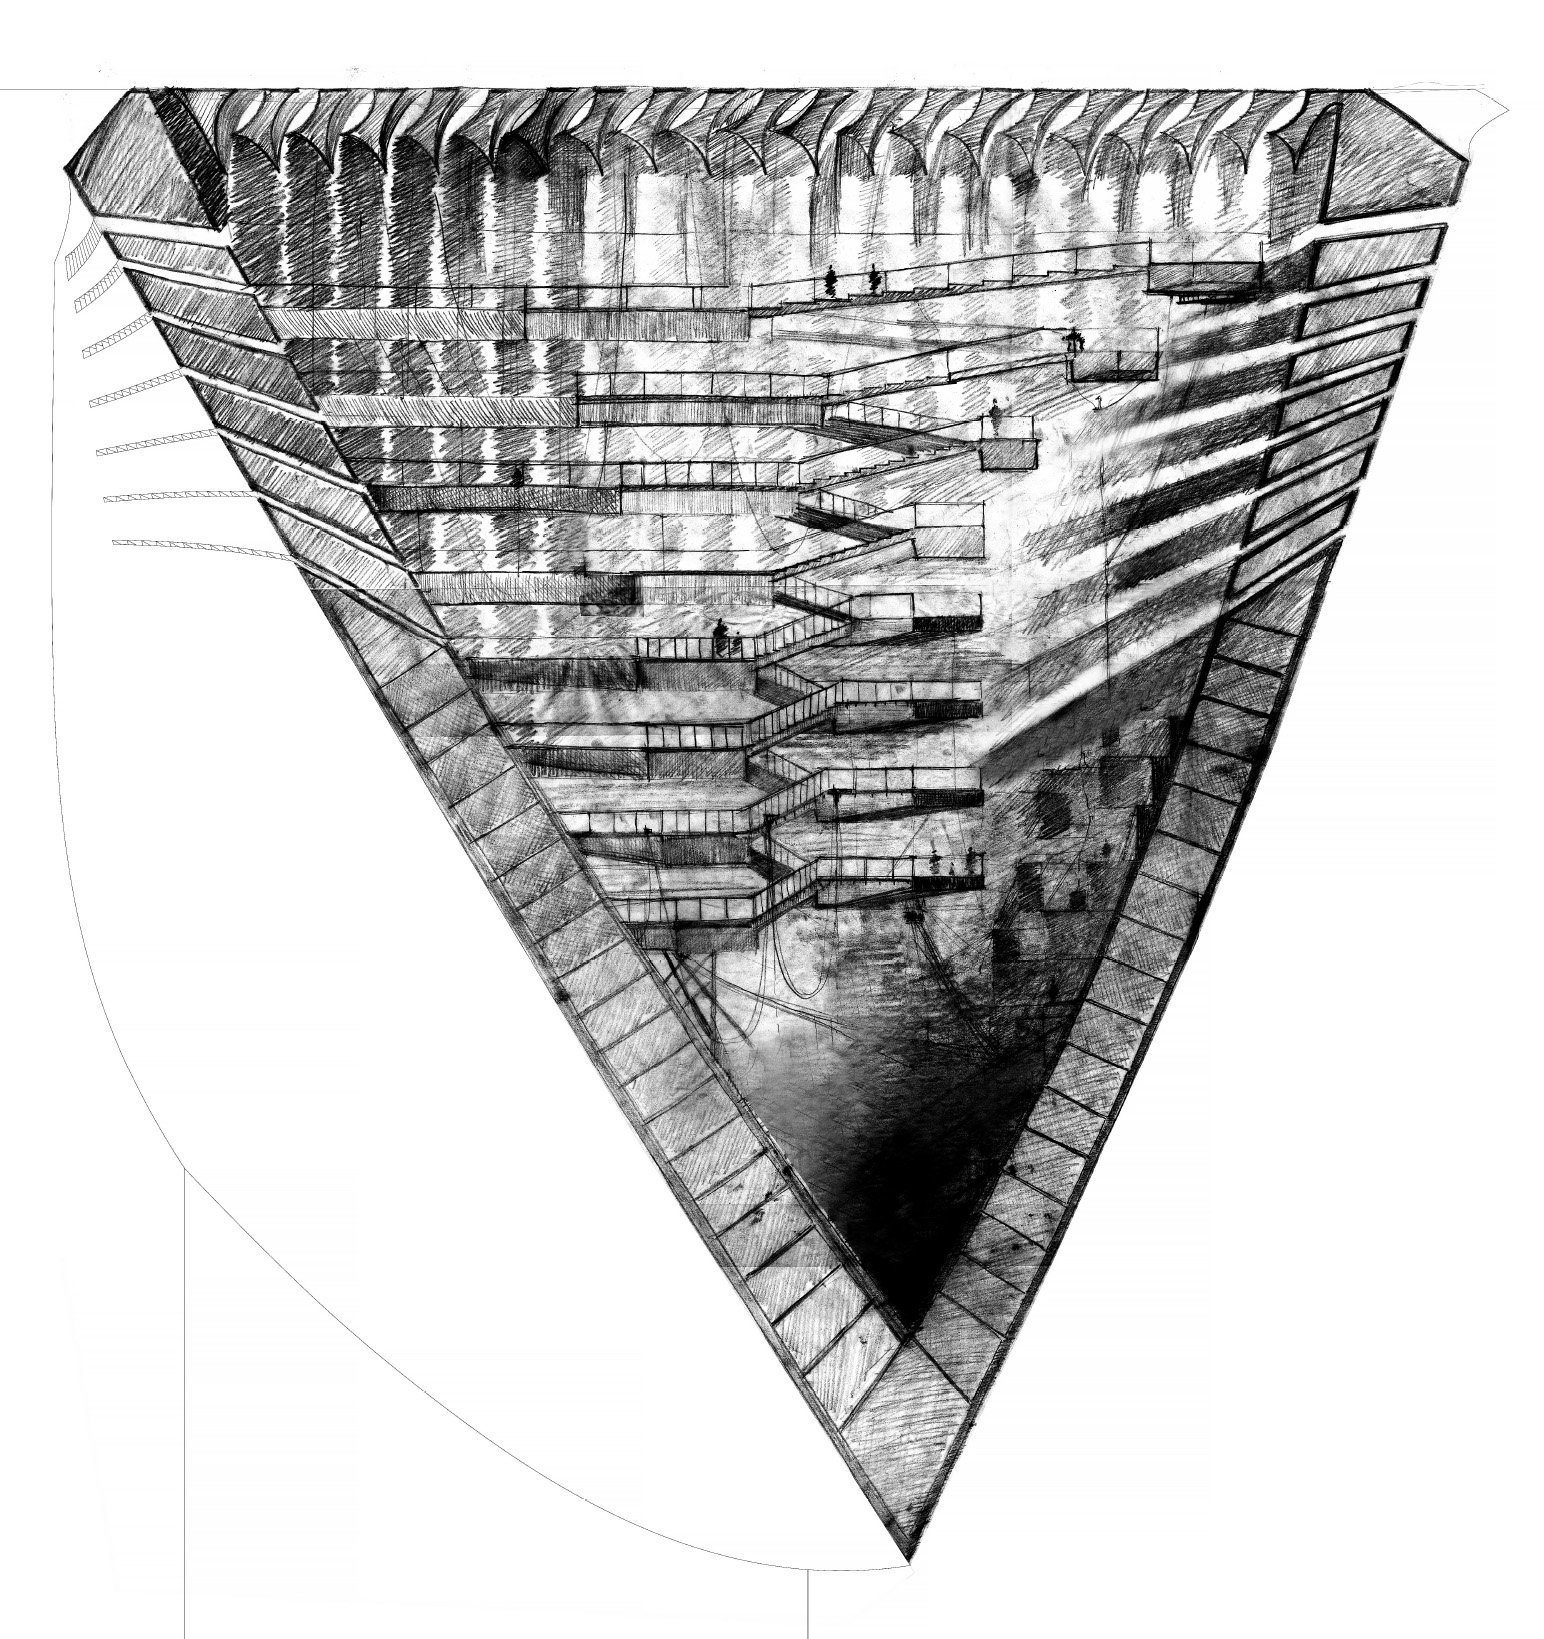 Rendering: Erioseto Hendranata <br /><br /> The drawn representation of 4° is rendered in the style of Giovanni Battista Piranesi. Piranesi's Carceri (Prisons) etchings use dramatic lighting to create depth and volume and to accentuate the labyrinthine nature of the architecture. Though the spiral stair in 4° is a simple path, not a maze, the space is a network of stairs and bridges which particularly in section bears a resemblance to Piranesi's prisons.